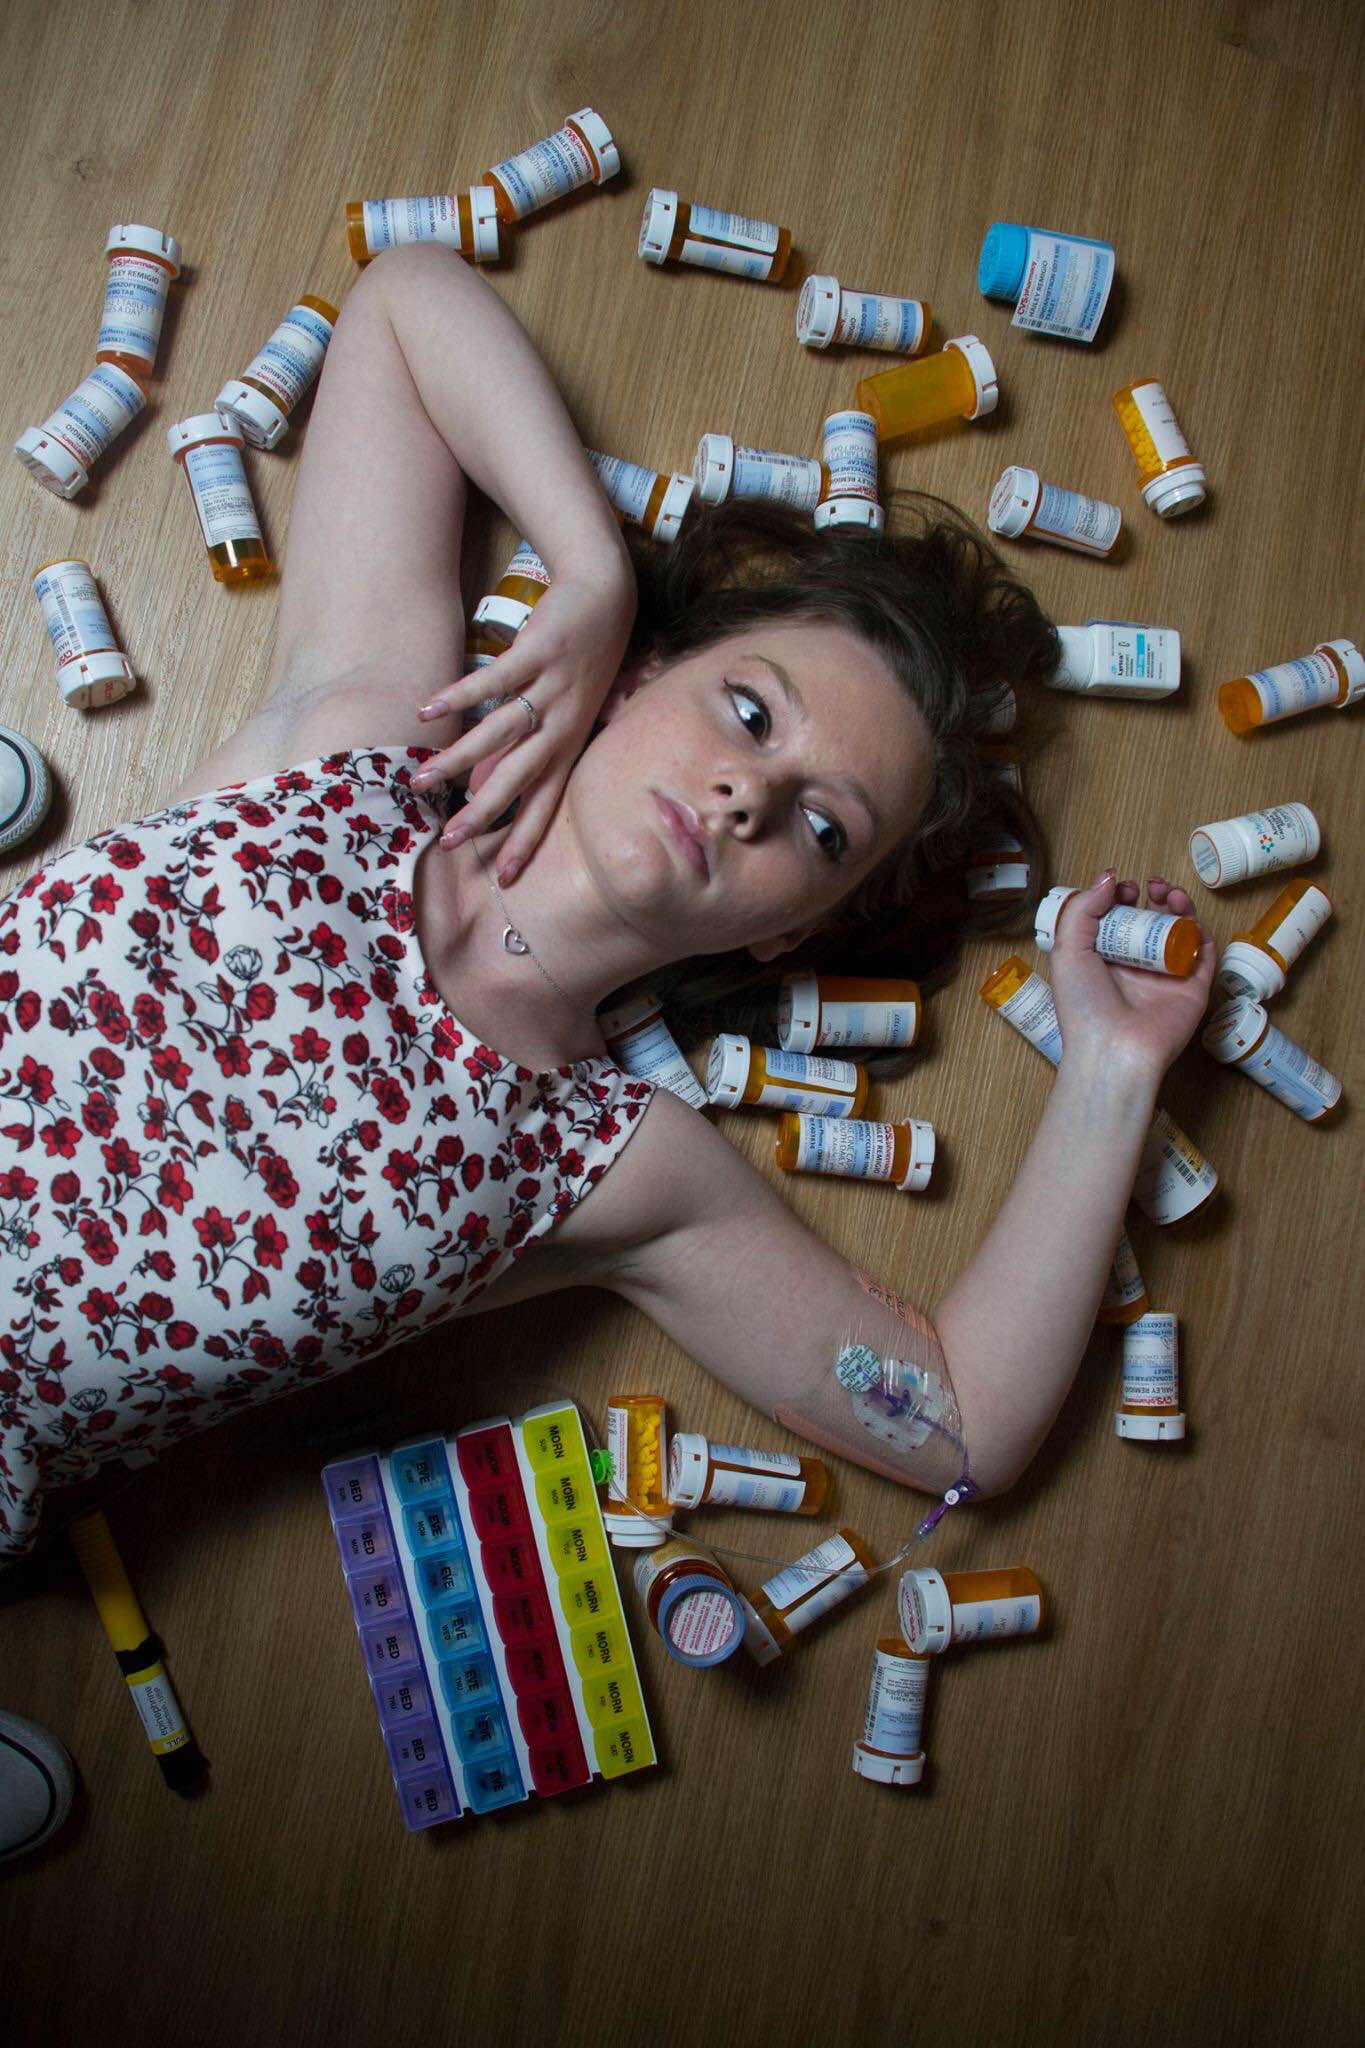 hailey laying on top of pill bottles